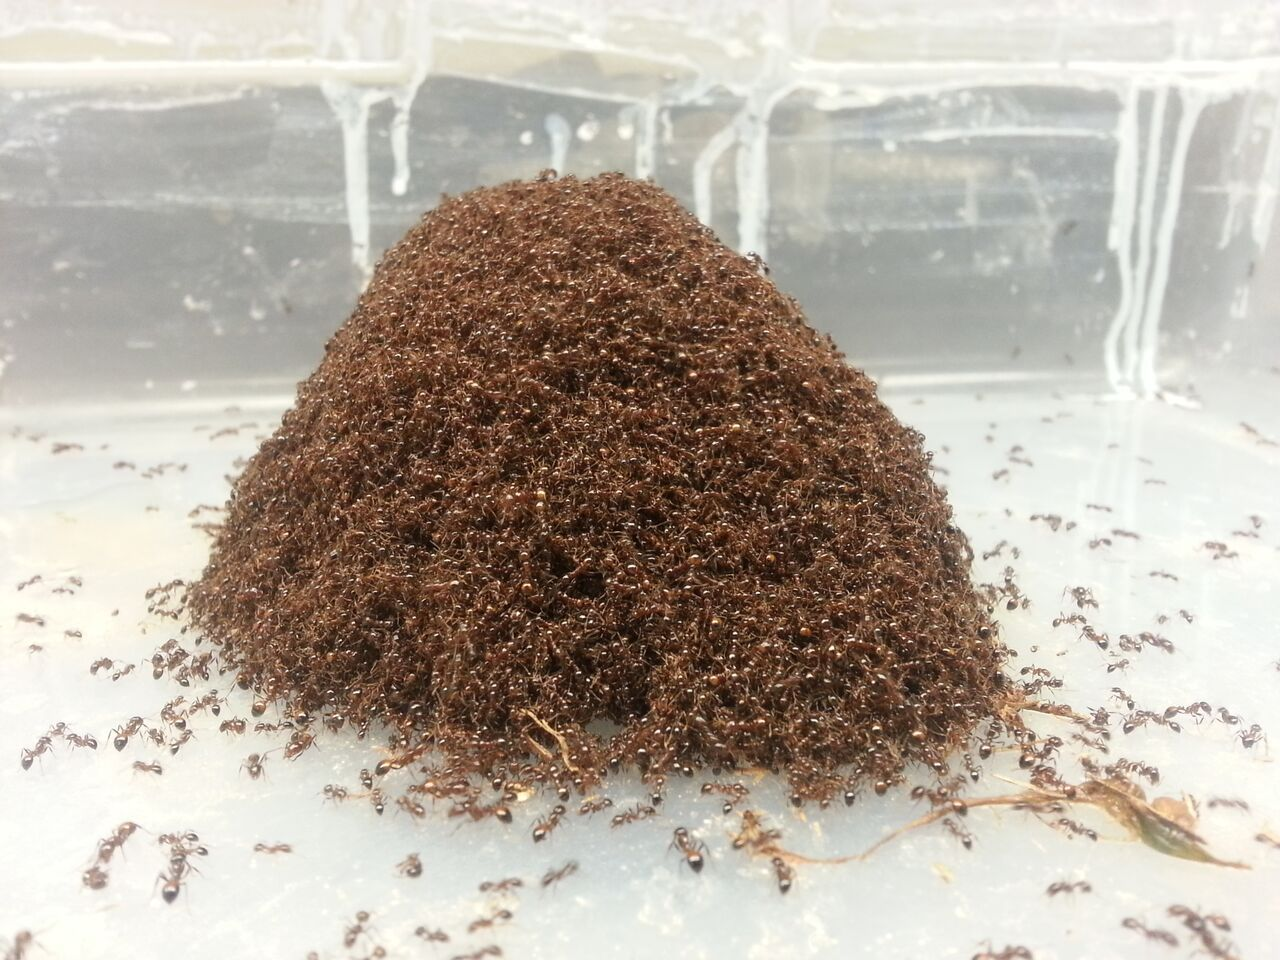 Video: Ants Act Like Both Liquids and Solids